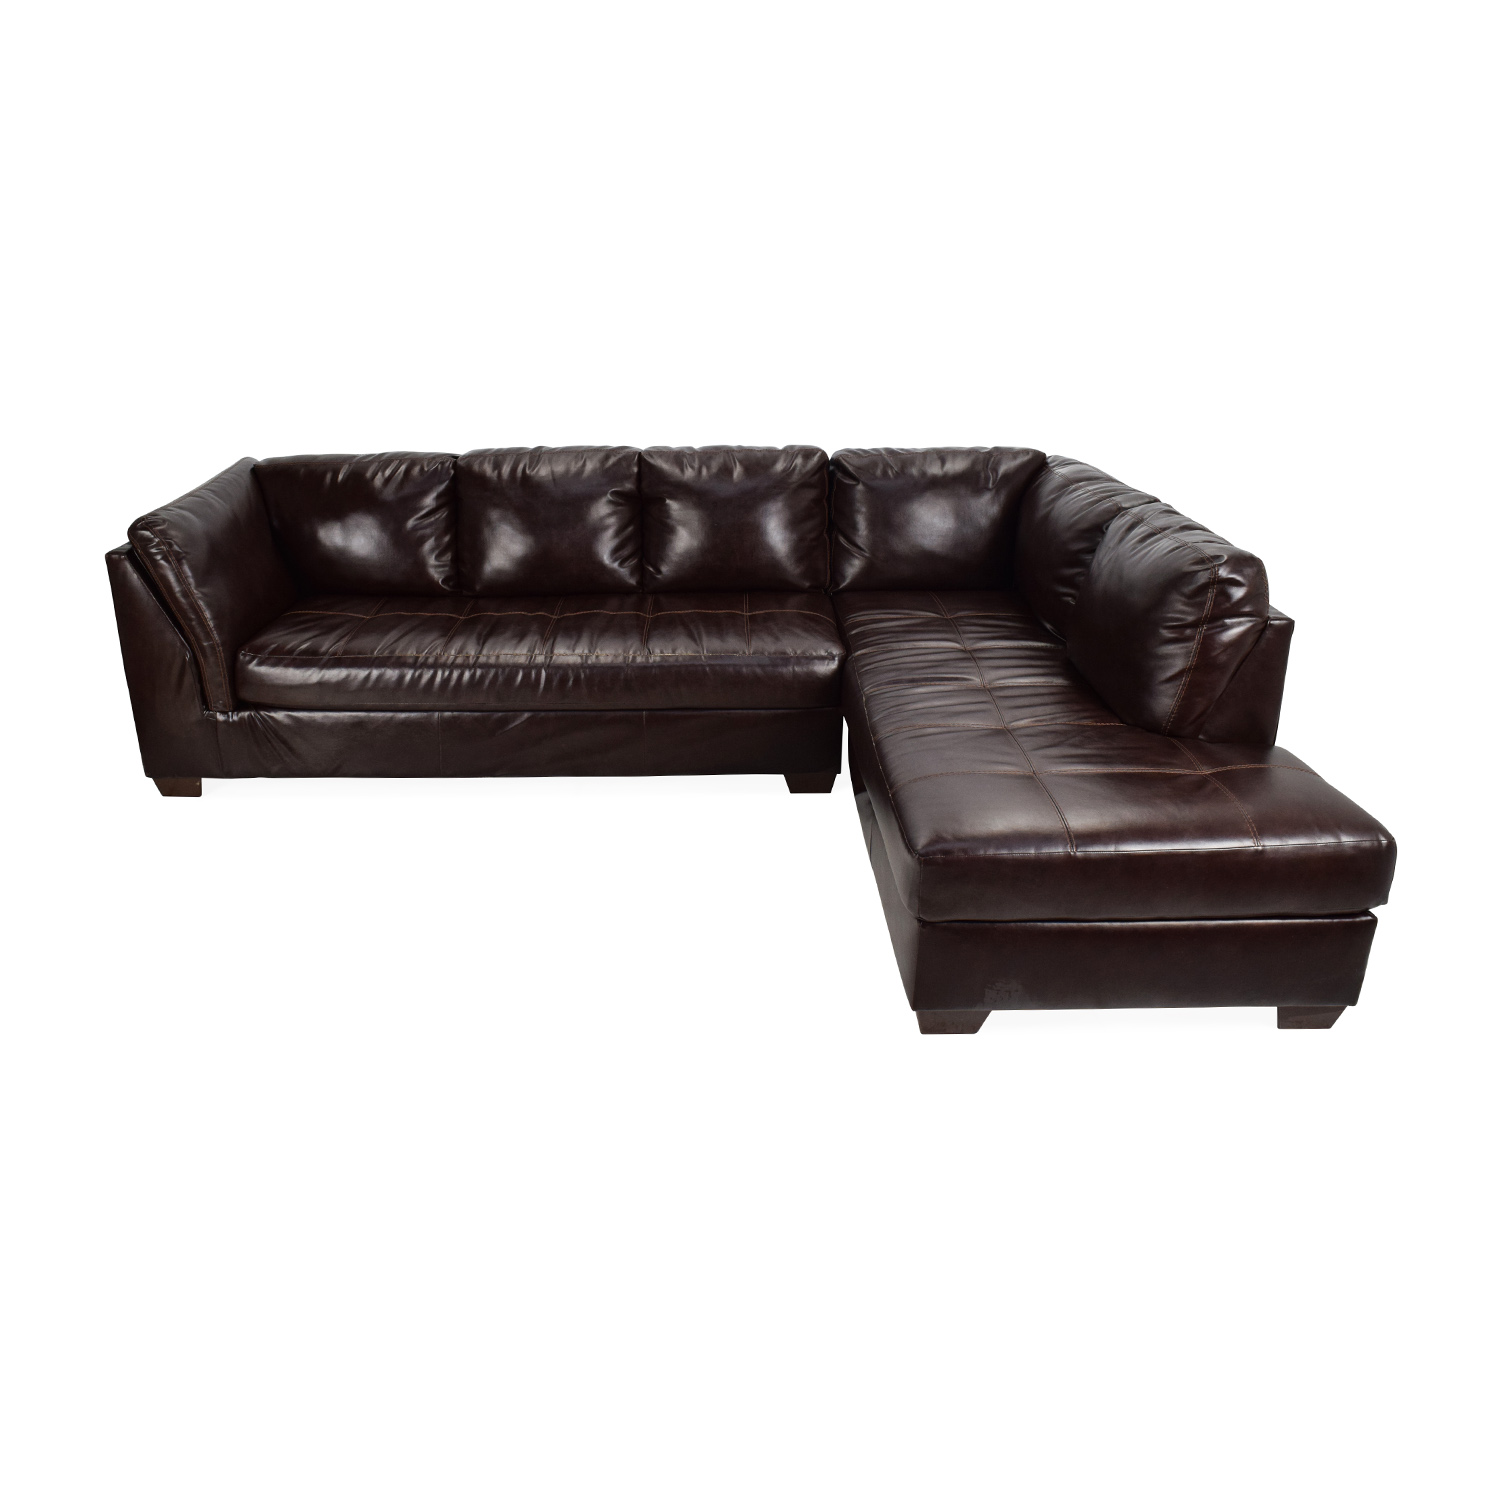 shop Jennifer Convertibles Jennifer Convertibles Brown Leather Sectional online